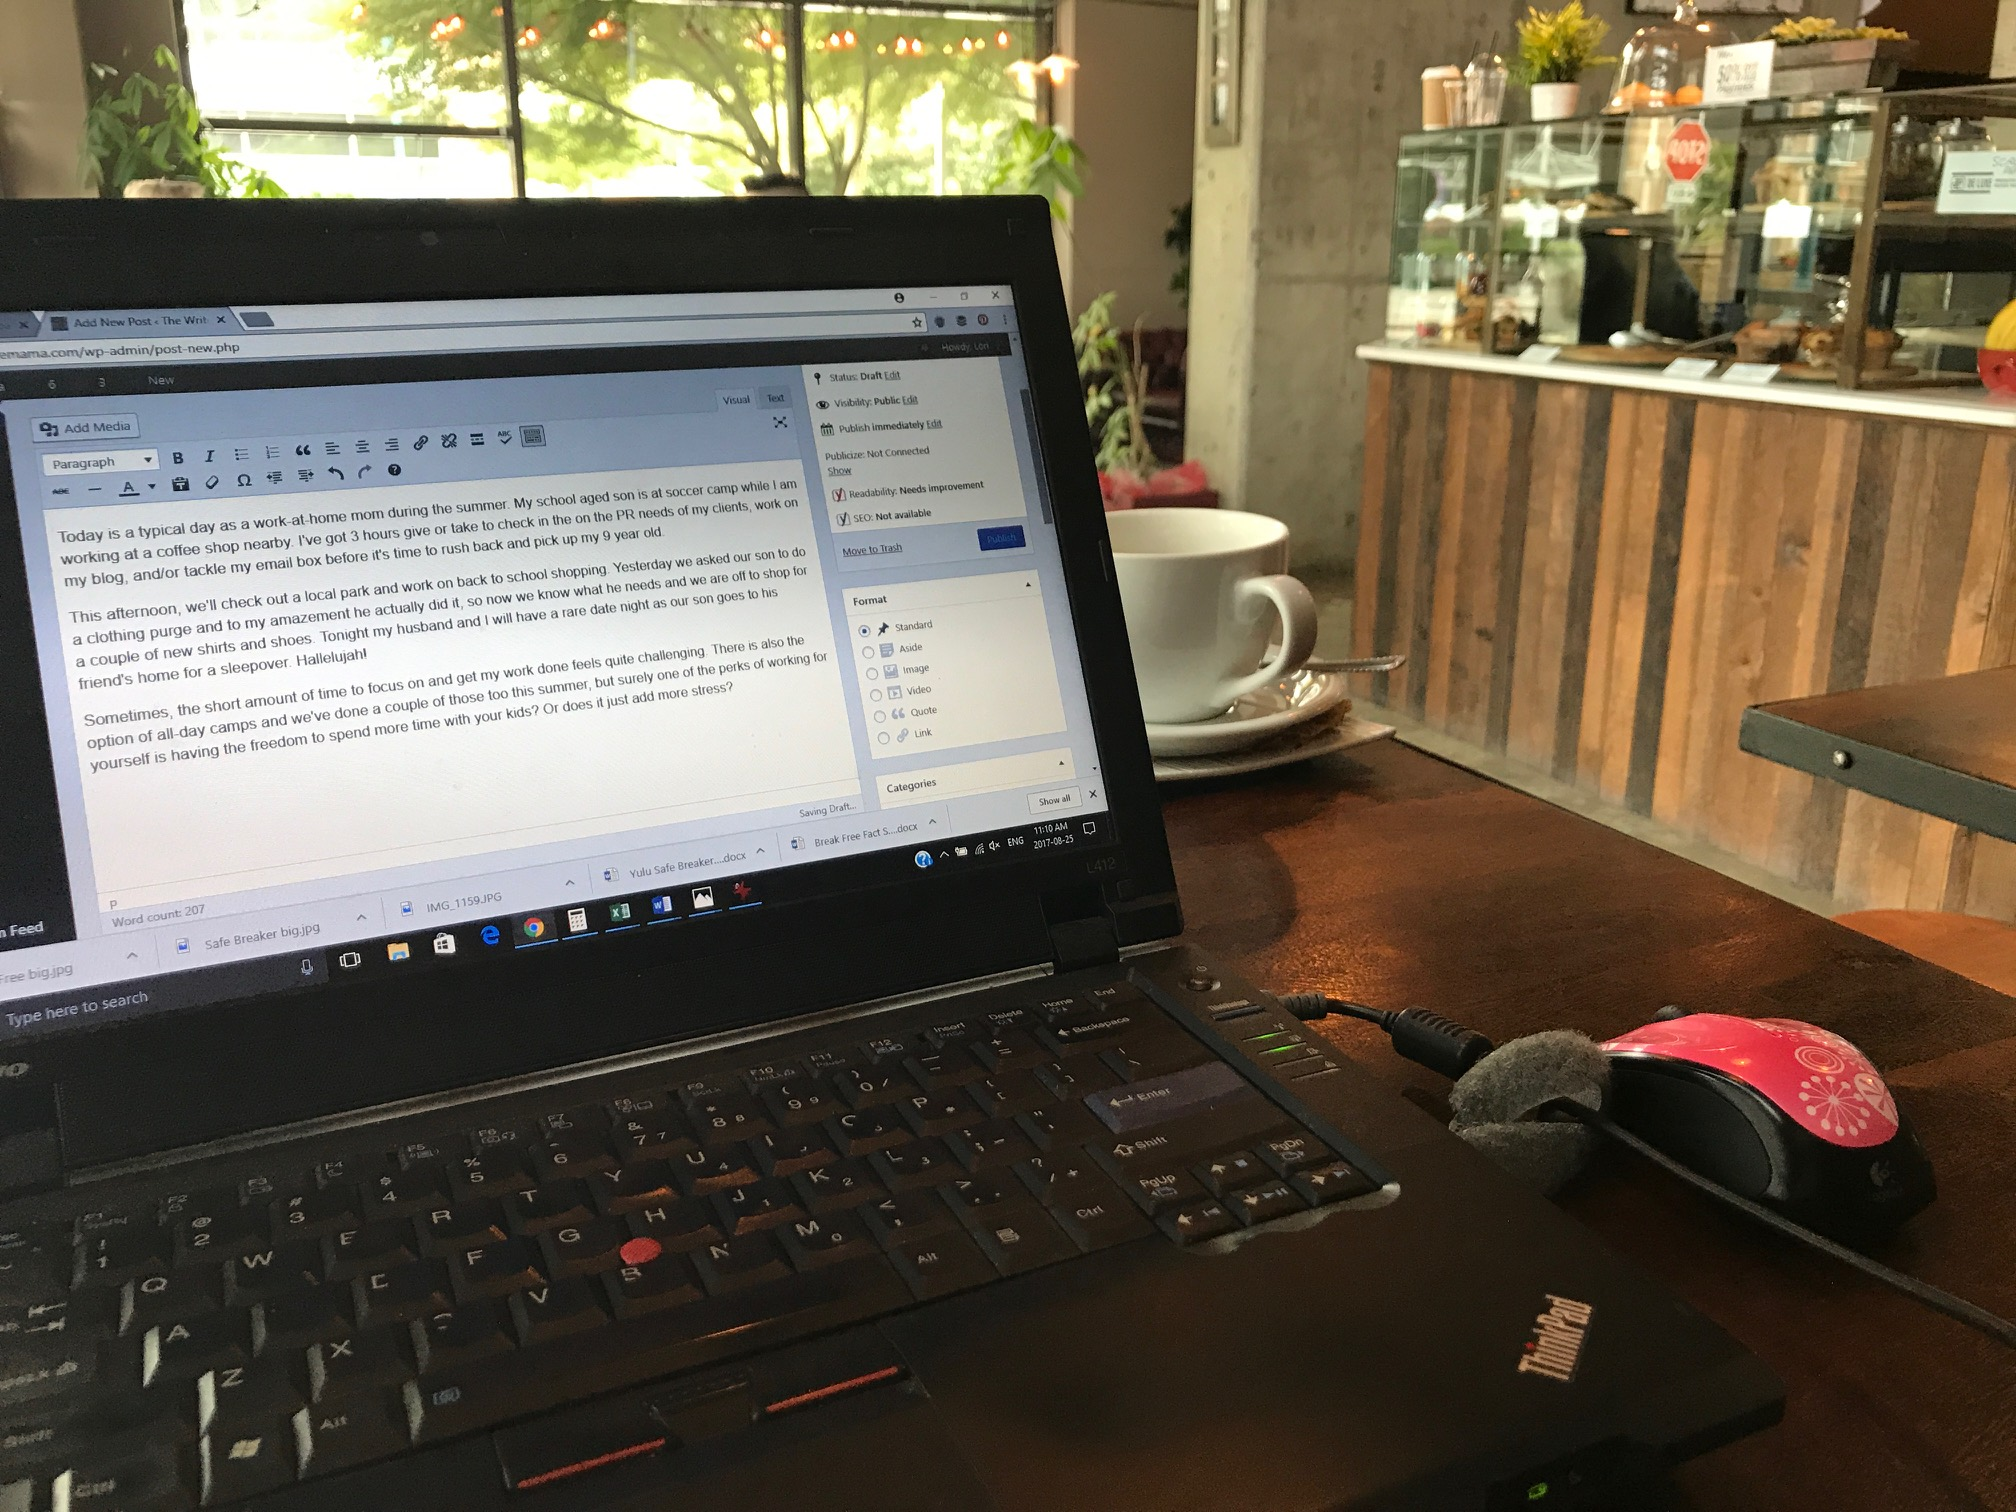 life as a writer Today's post is written in collaboration with my great writer friend tom lowery in conversations we've discussed the realities of life as a writer.